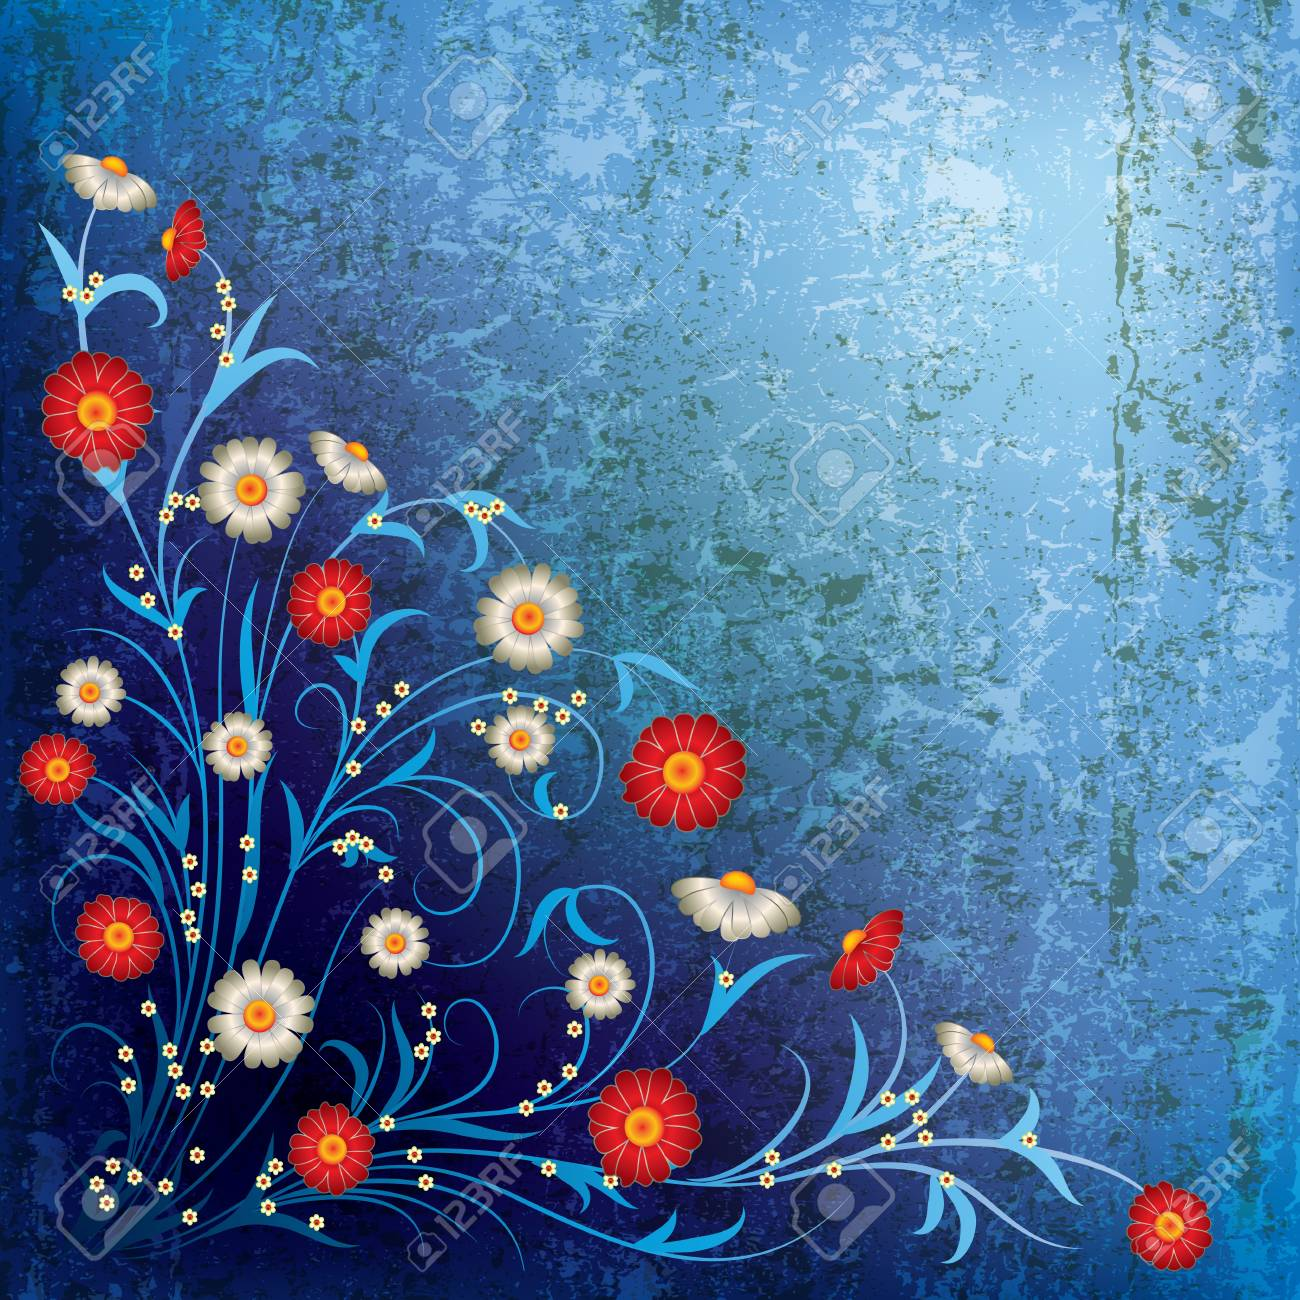 abstract grunge illustration with white flowers on blue background Stock Vector - 9817772